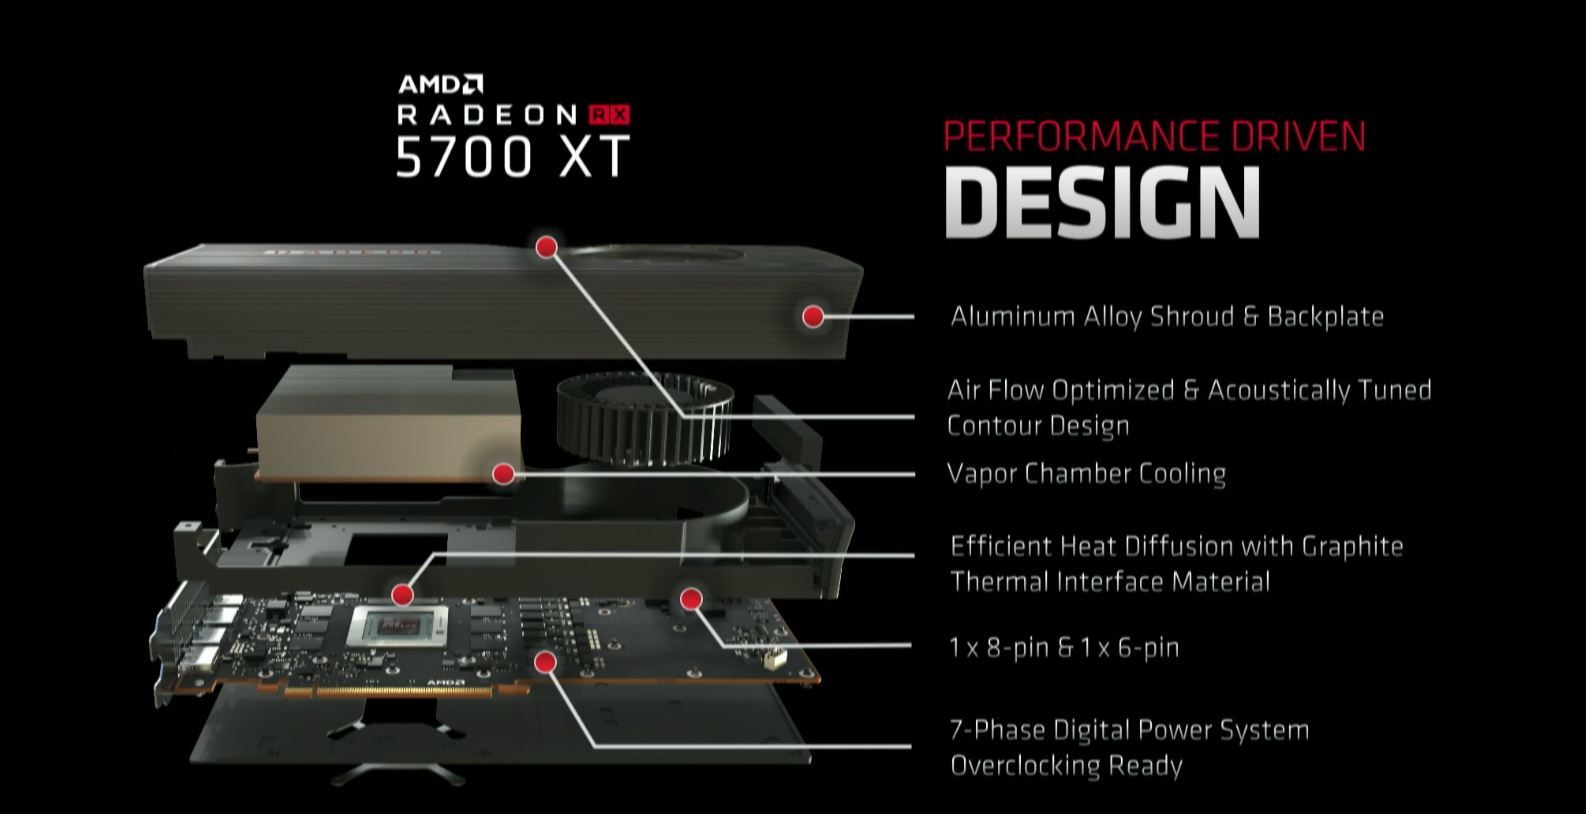 AMD Radeon RX 5700XT Series Design E3